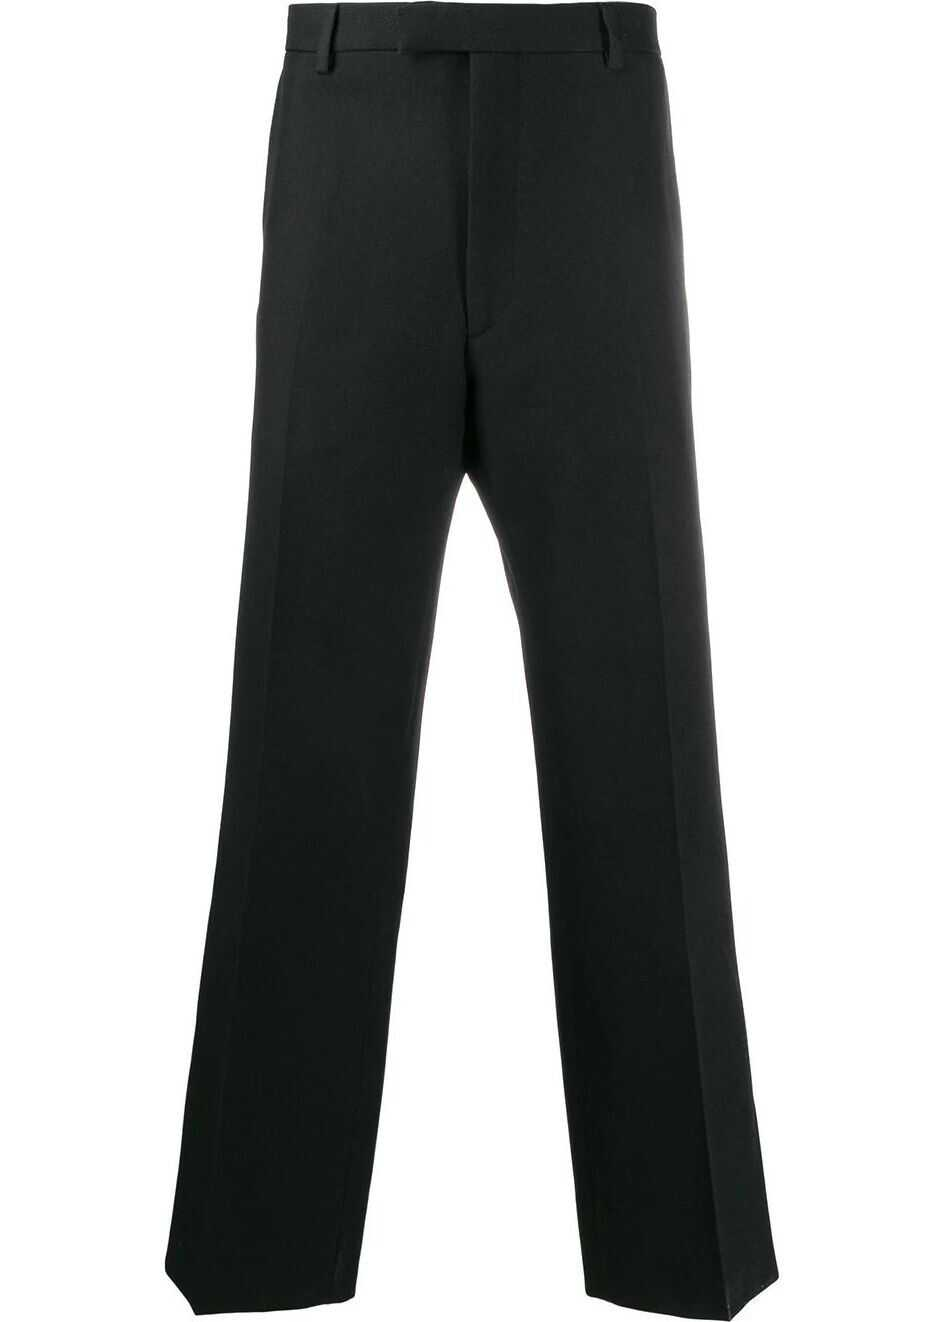 Prada Synthetic Fibers Pants BLACK